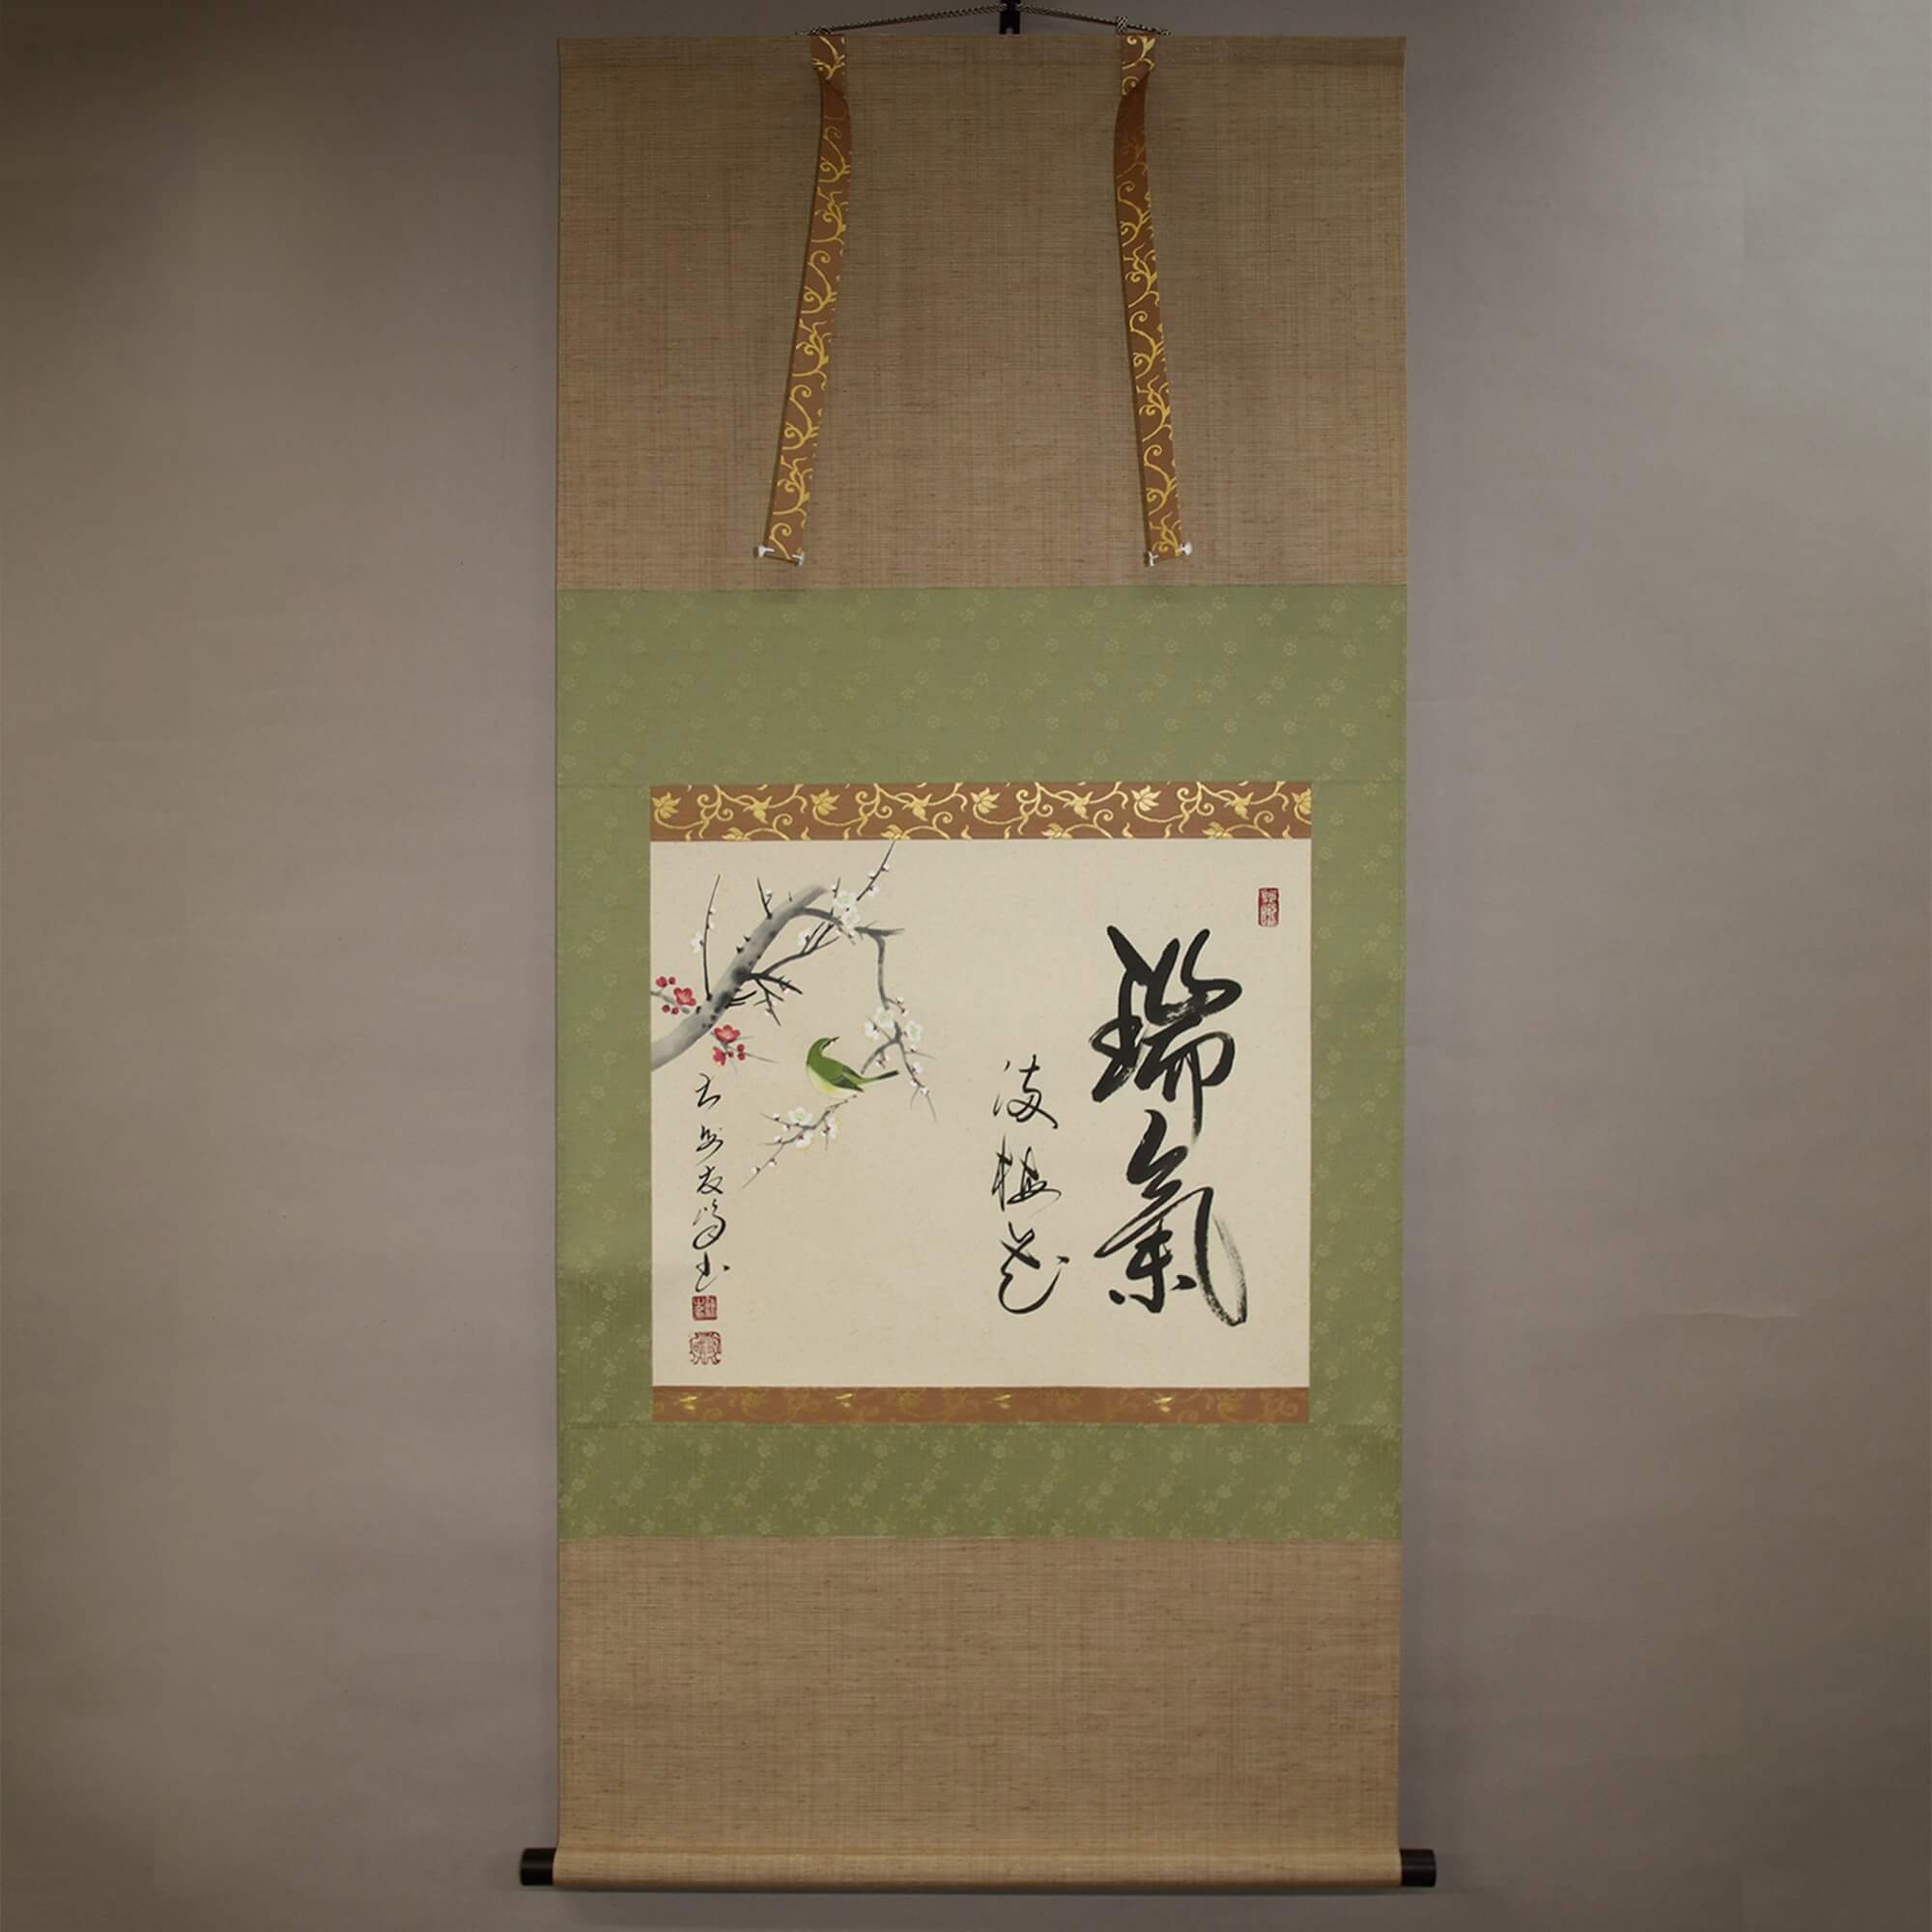 Calligraphy : Plum Blossom Is Full of a Splendidly Divine Atmosphere / Red & White Plum Blossom and Warbler / Takahashi Yūhō